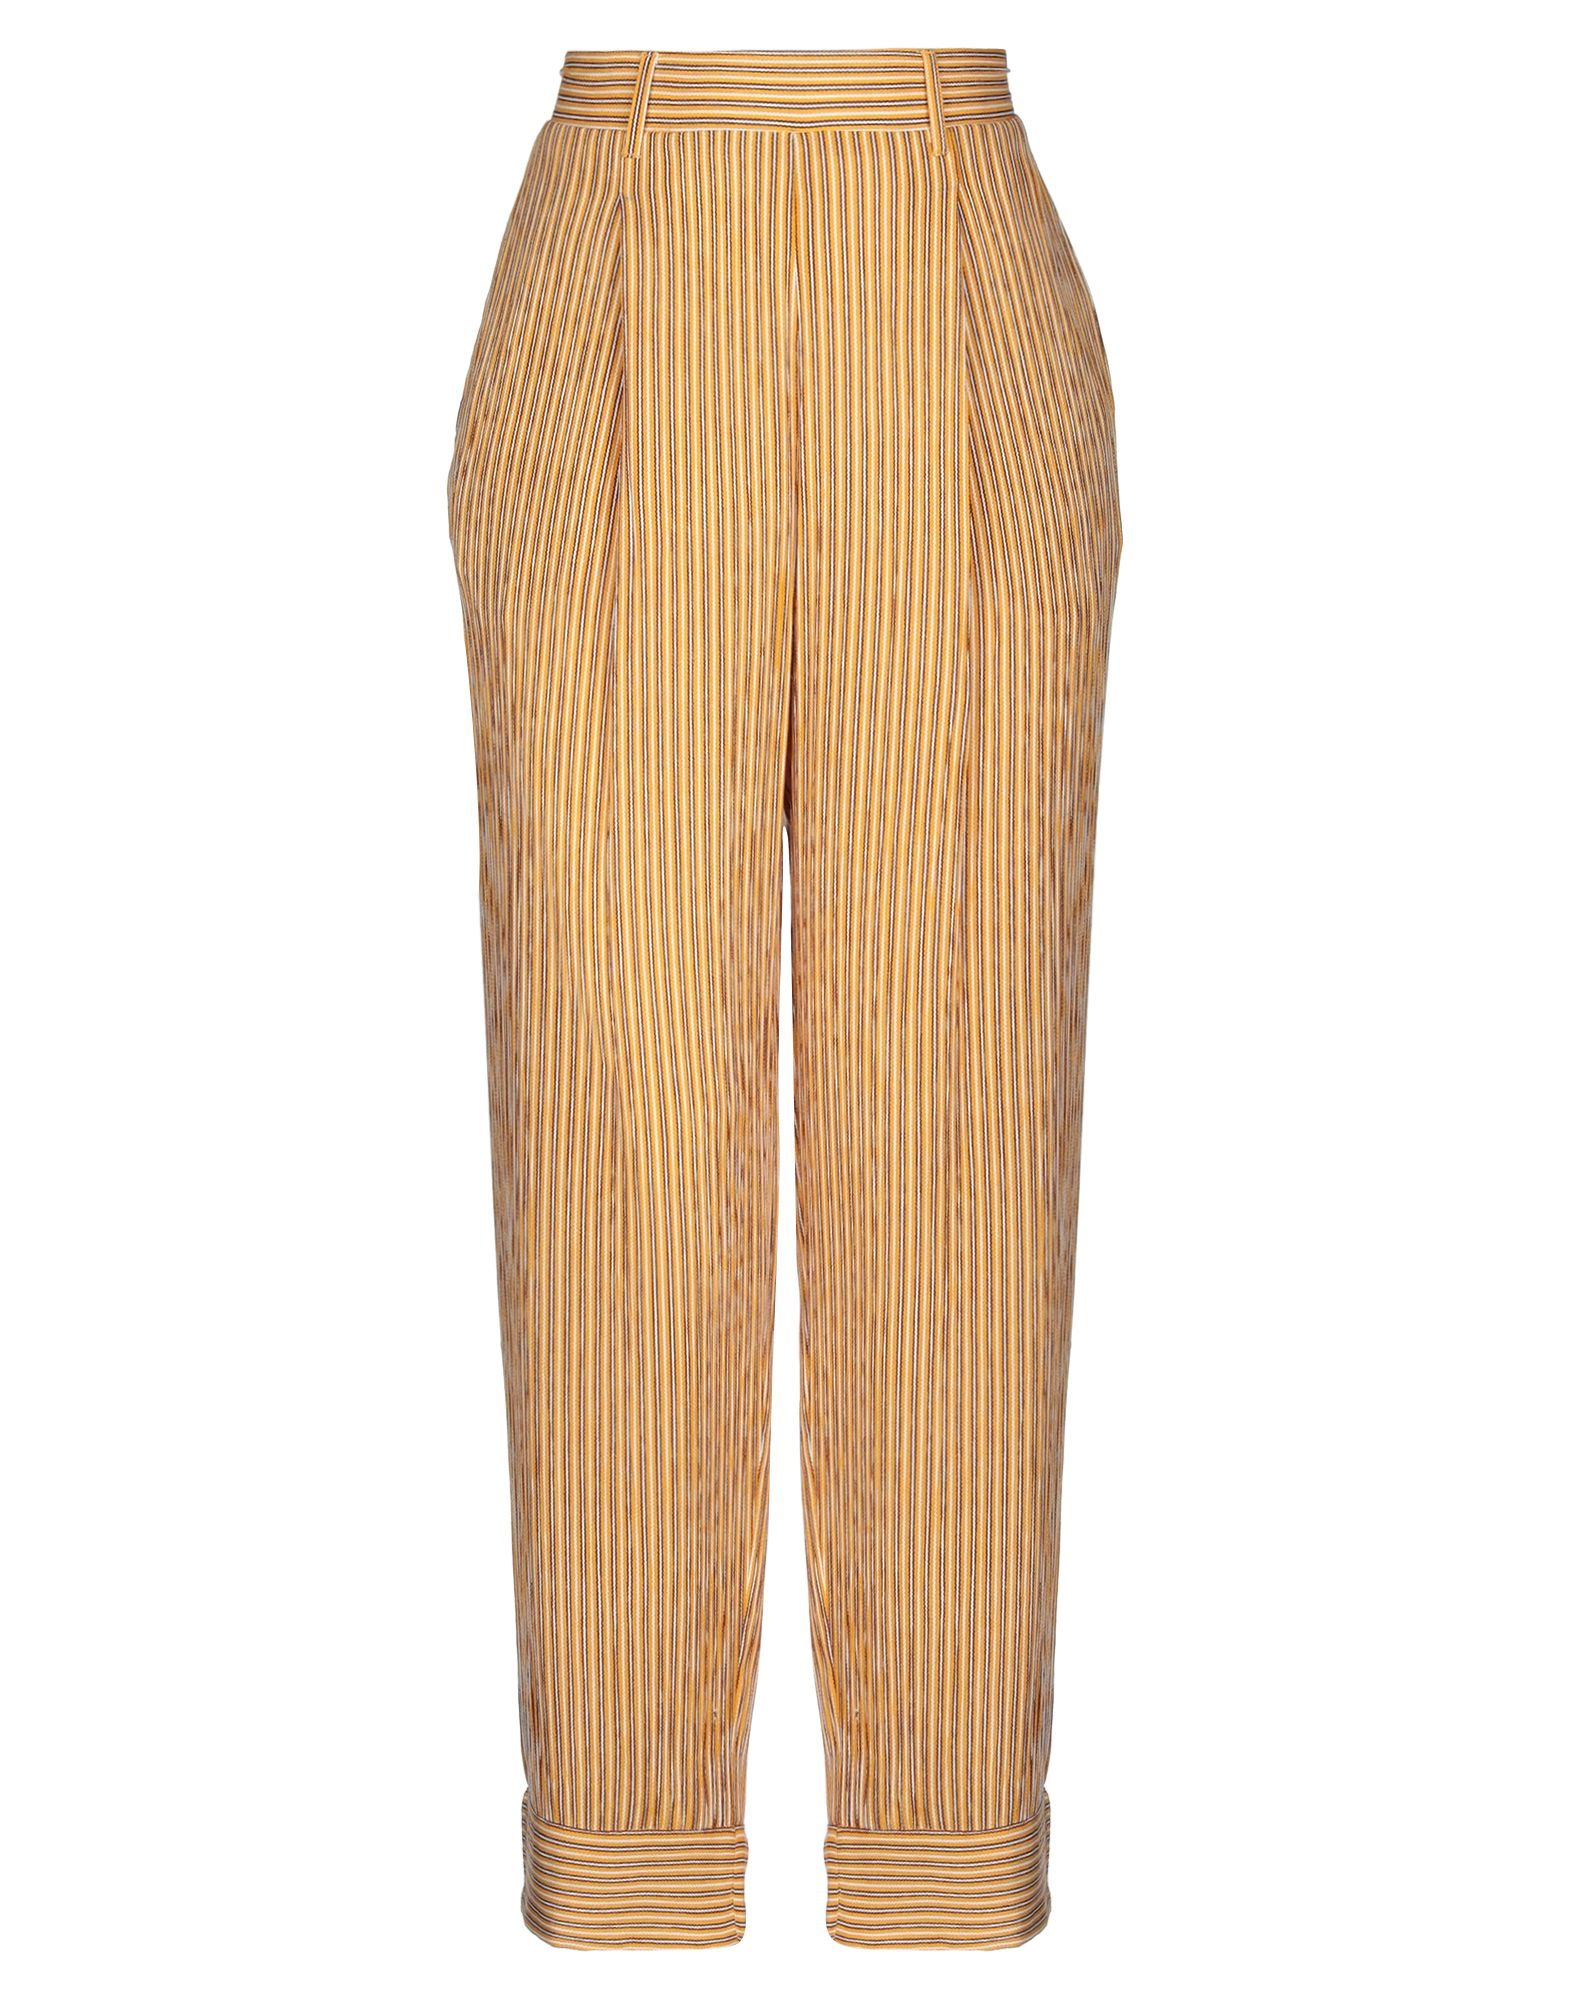 BAND OF GYPSIES Casual pants. crepe, no appliqués, stripes, high waisted, regular fit, straight leg, elasticized waist, multipockets. 100% Viscose